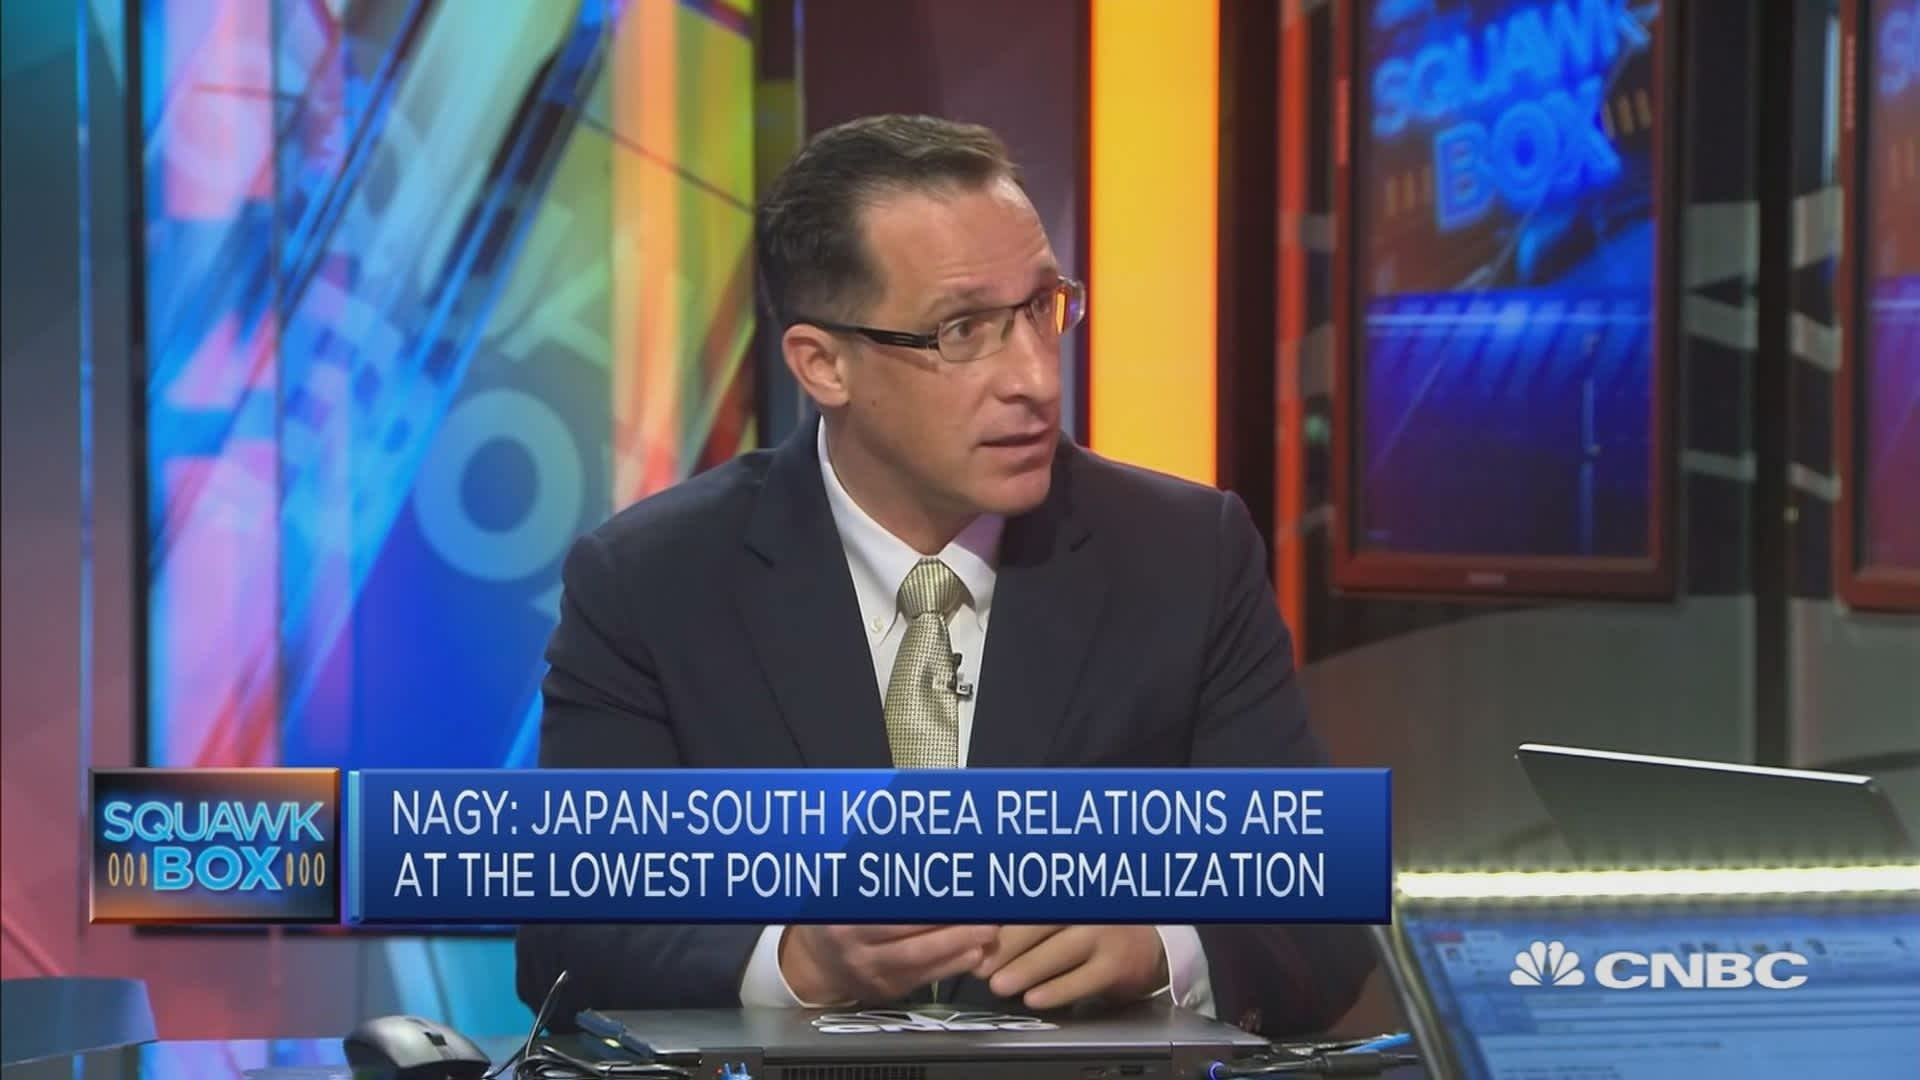 Japan-South Korea dispute is called 'disturbing and unhelpful' for the global economy